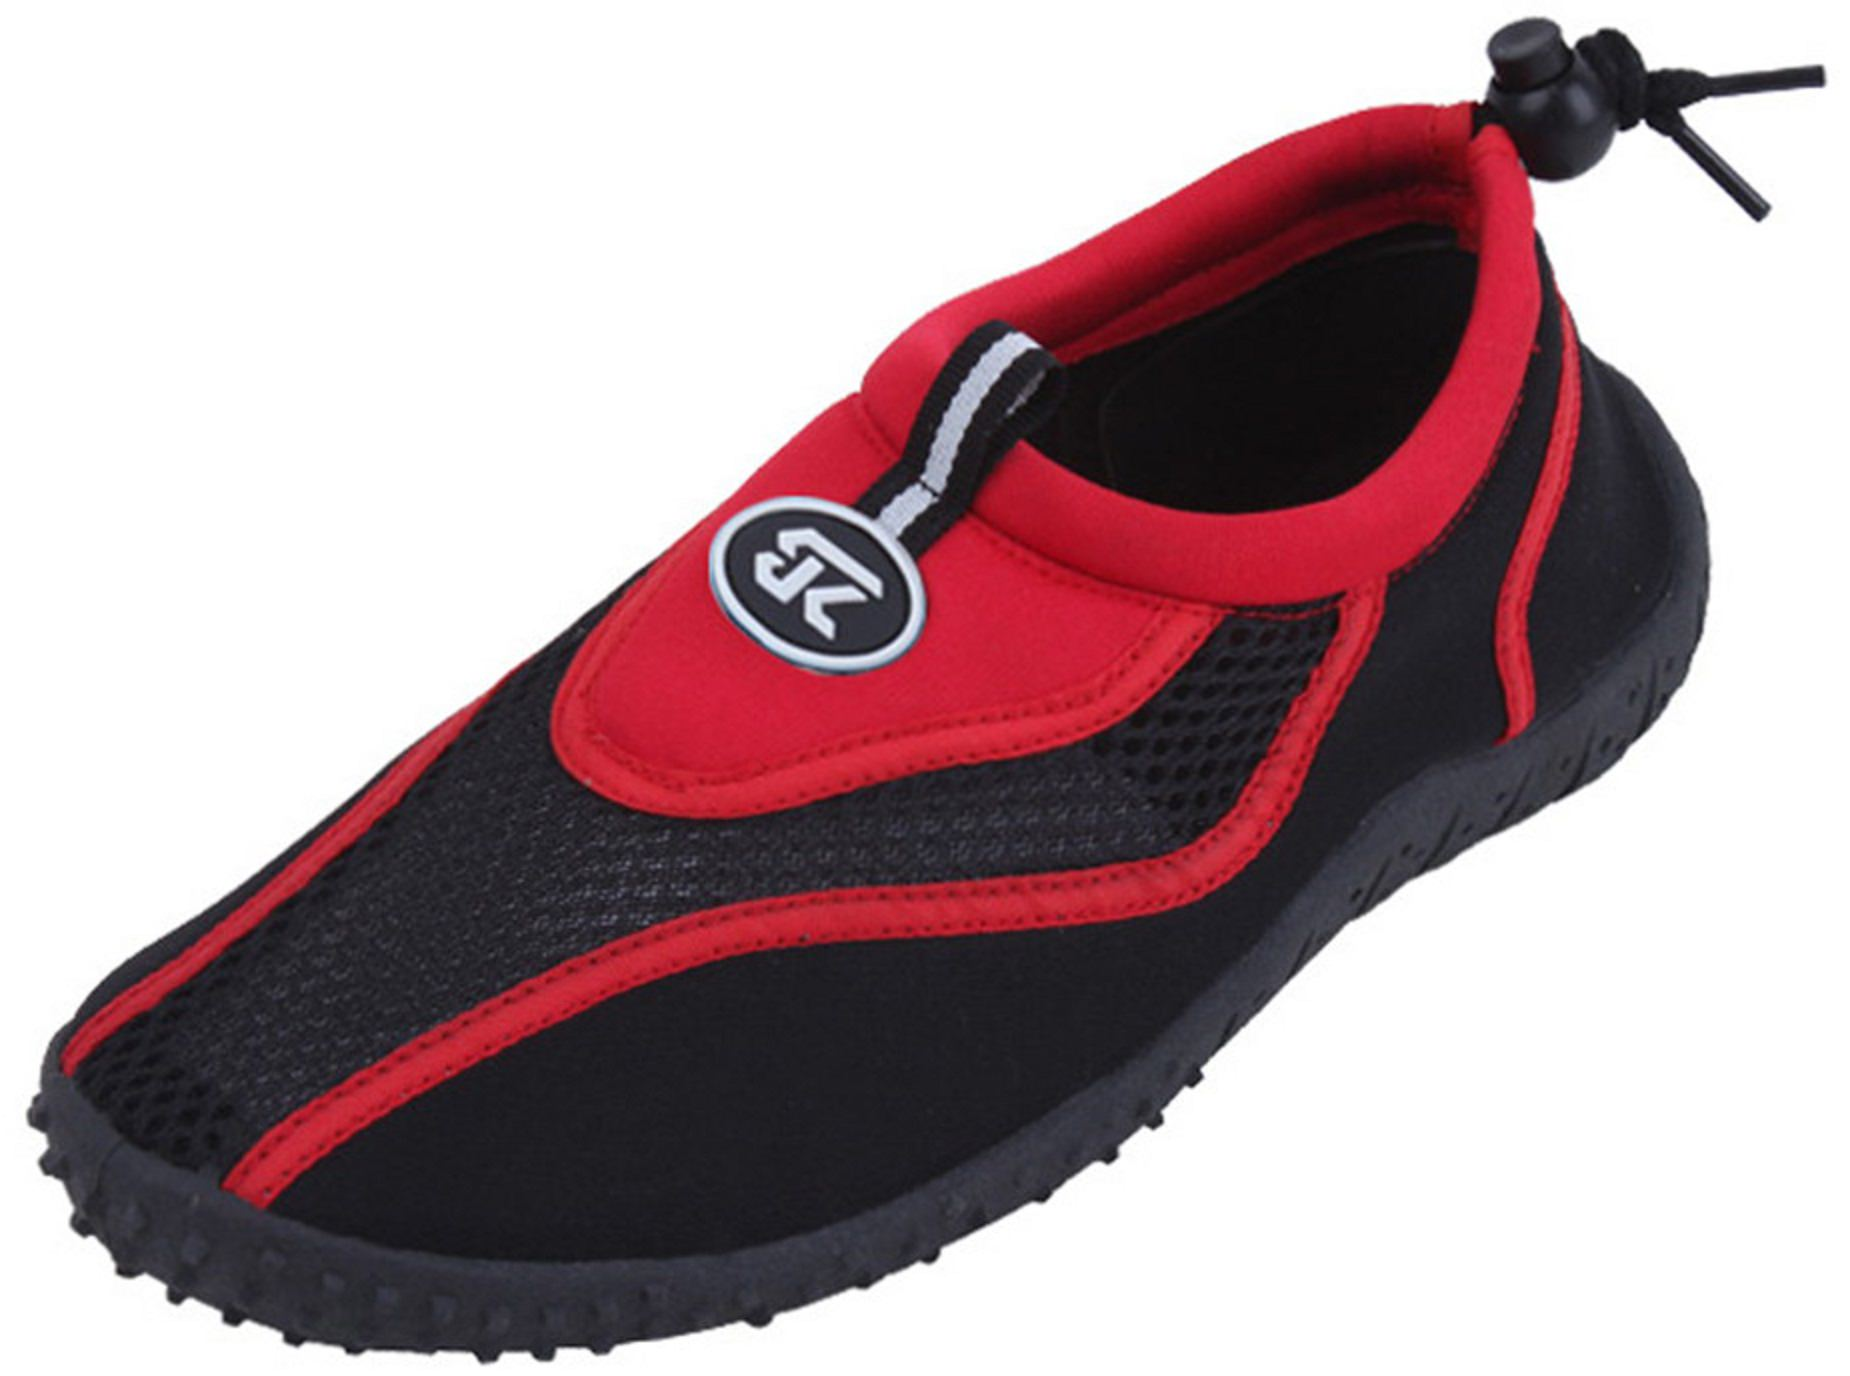 New Women's Athletic Water Shoes Pool Beach Aqua Socks Shoes (2907-Red-11) by SBG